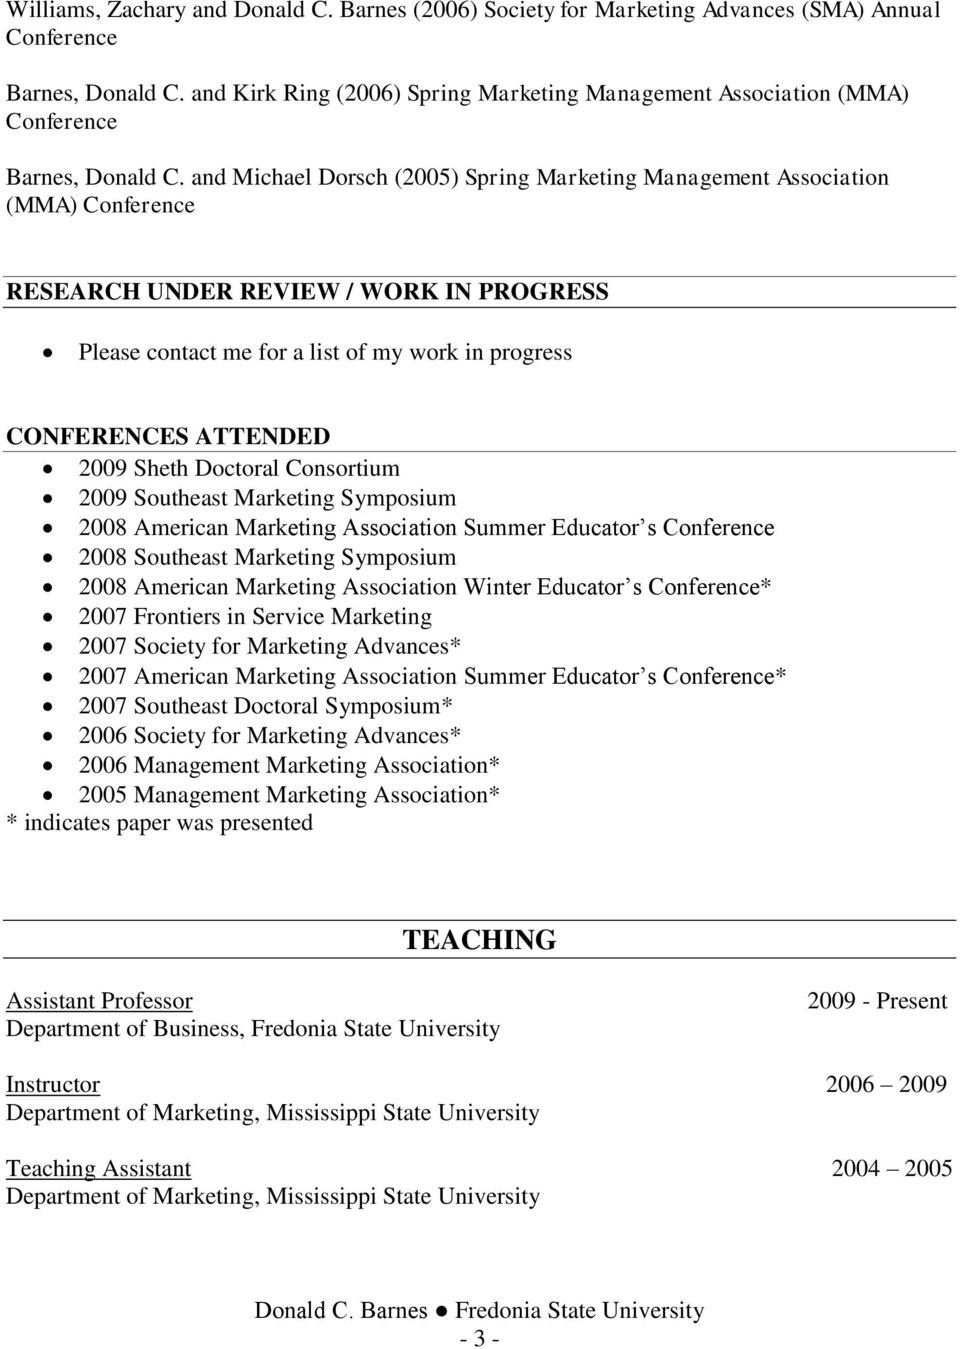 and Michael Dorsch (2005) Spring Marketing Management Association (MMA) Conference RESEARCH UNDER REVIEW / WORK IN PROGRESS Please contact me for a list of my work in progress CONFERENCES ATTENDED